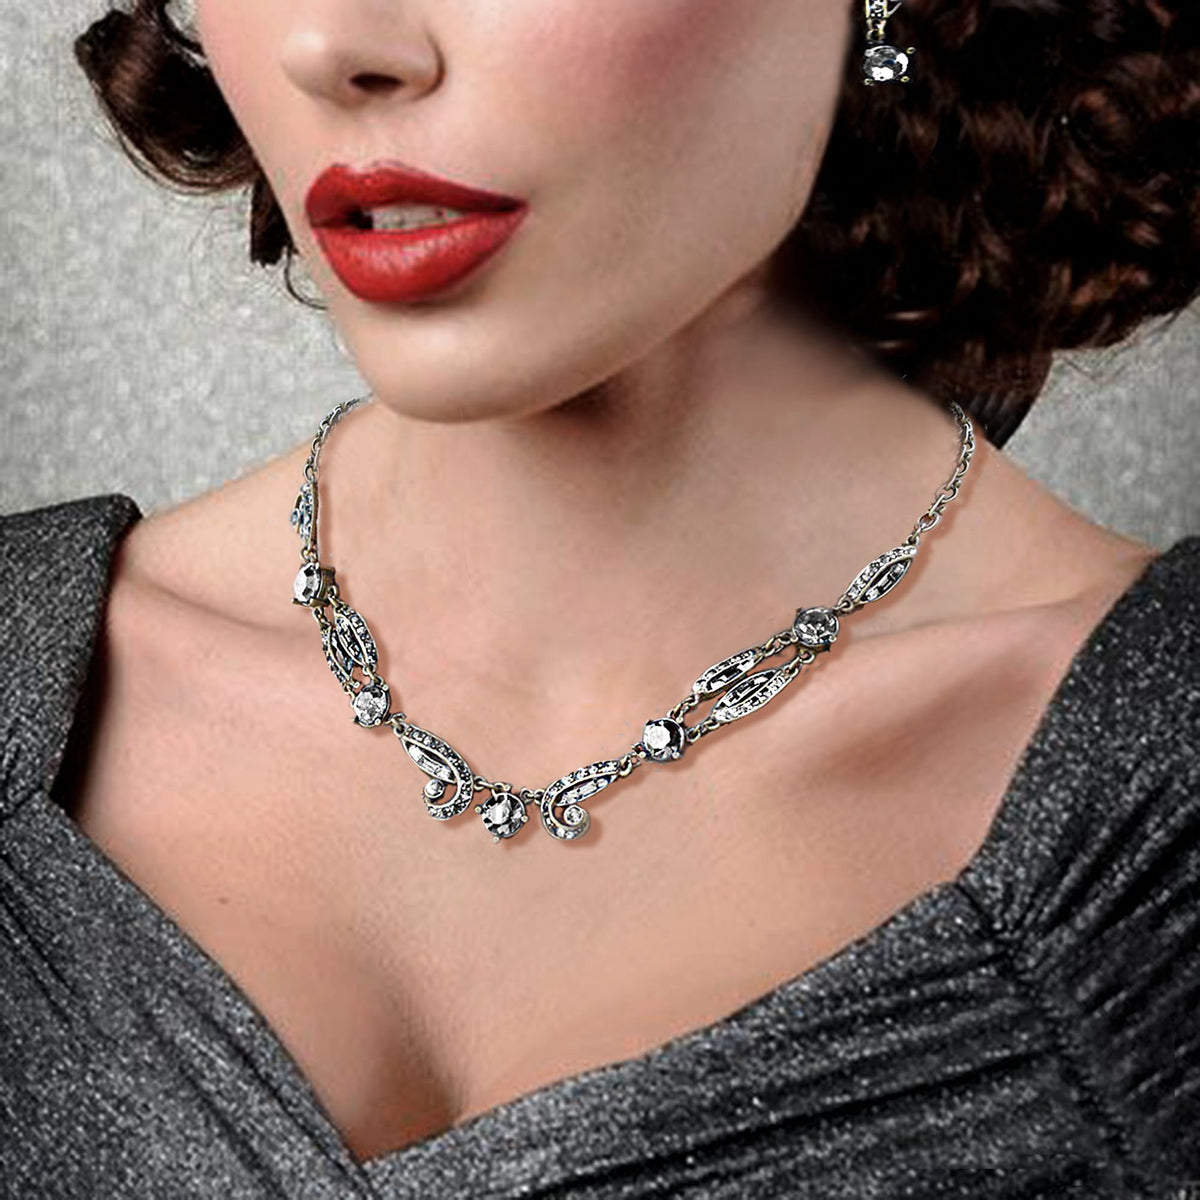 Art Deco Crystal Necklace N1616 - Sweet Romance Wholesale